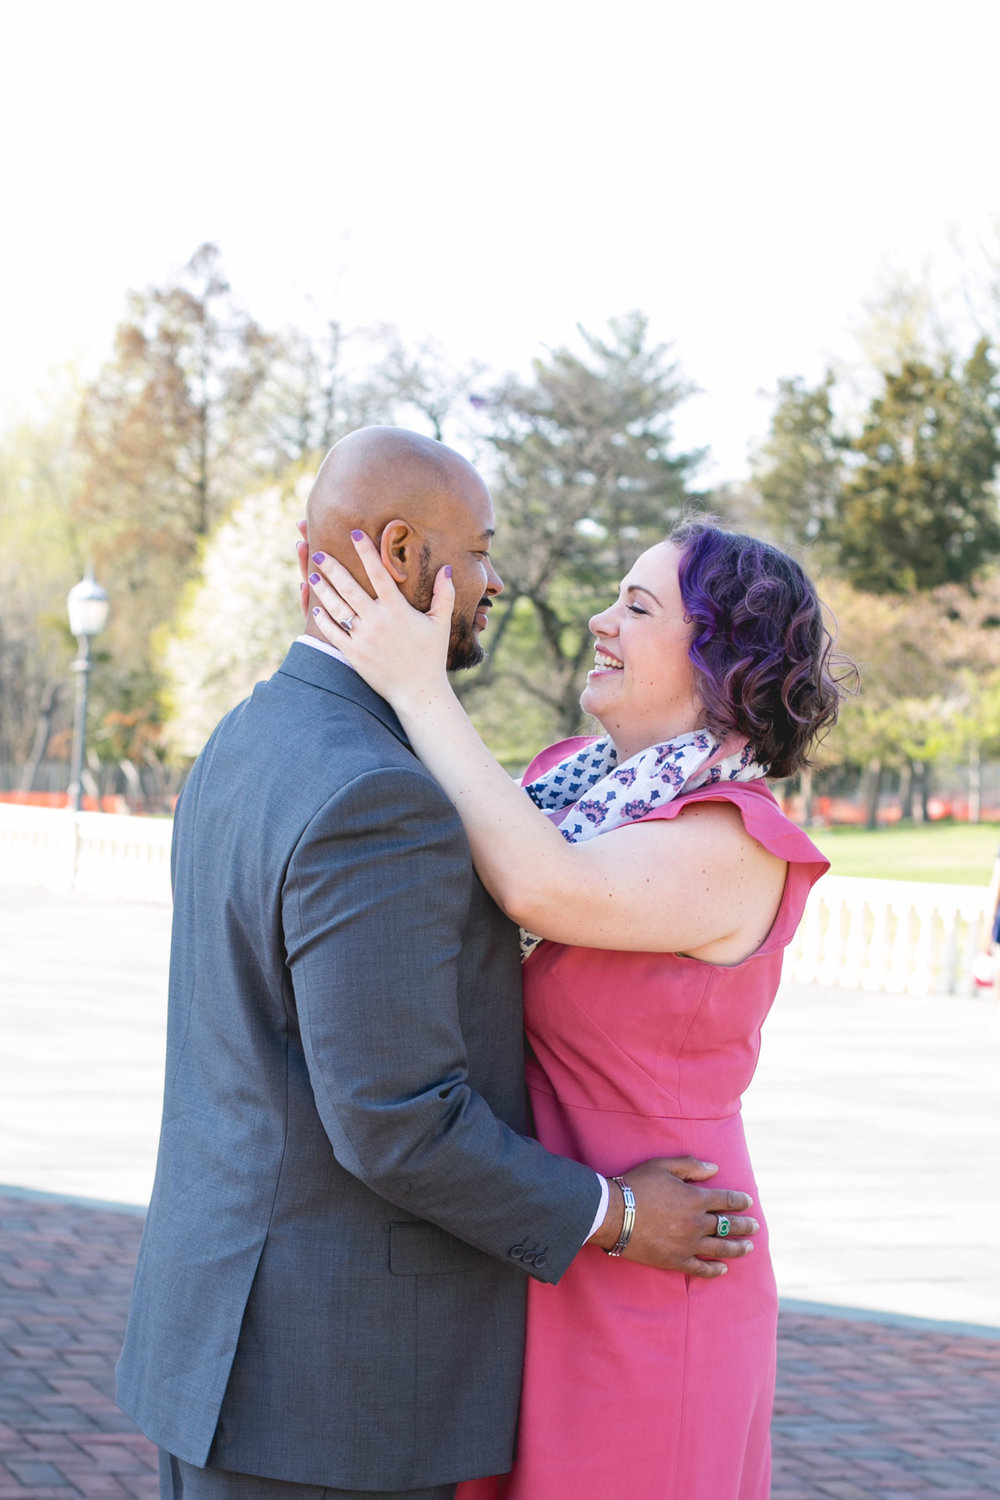 Vibrant Spring Philadelphia Engagement Shoot 2